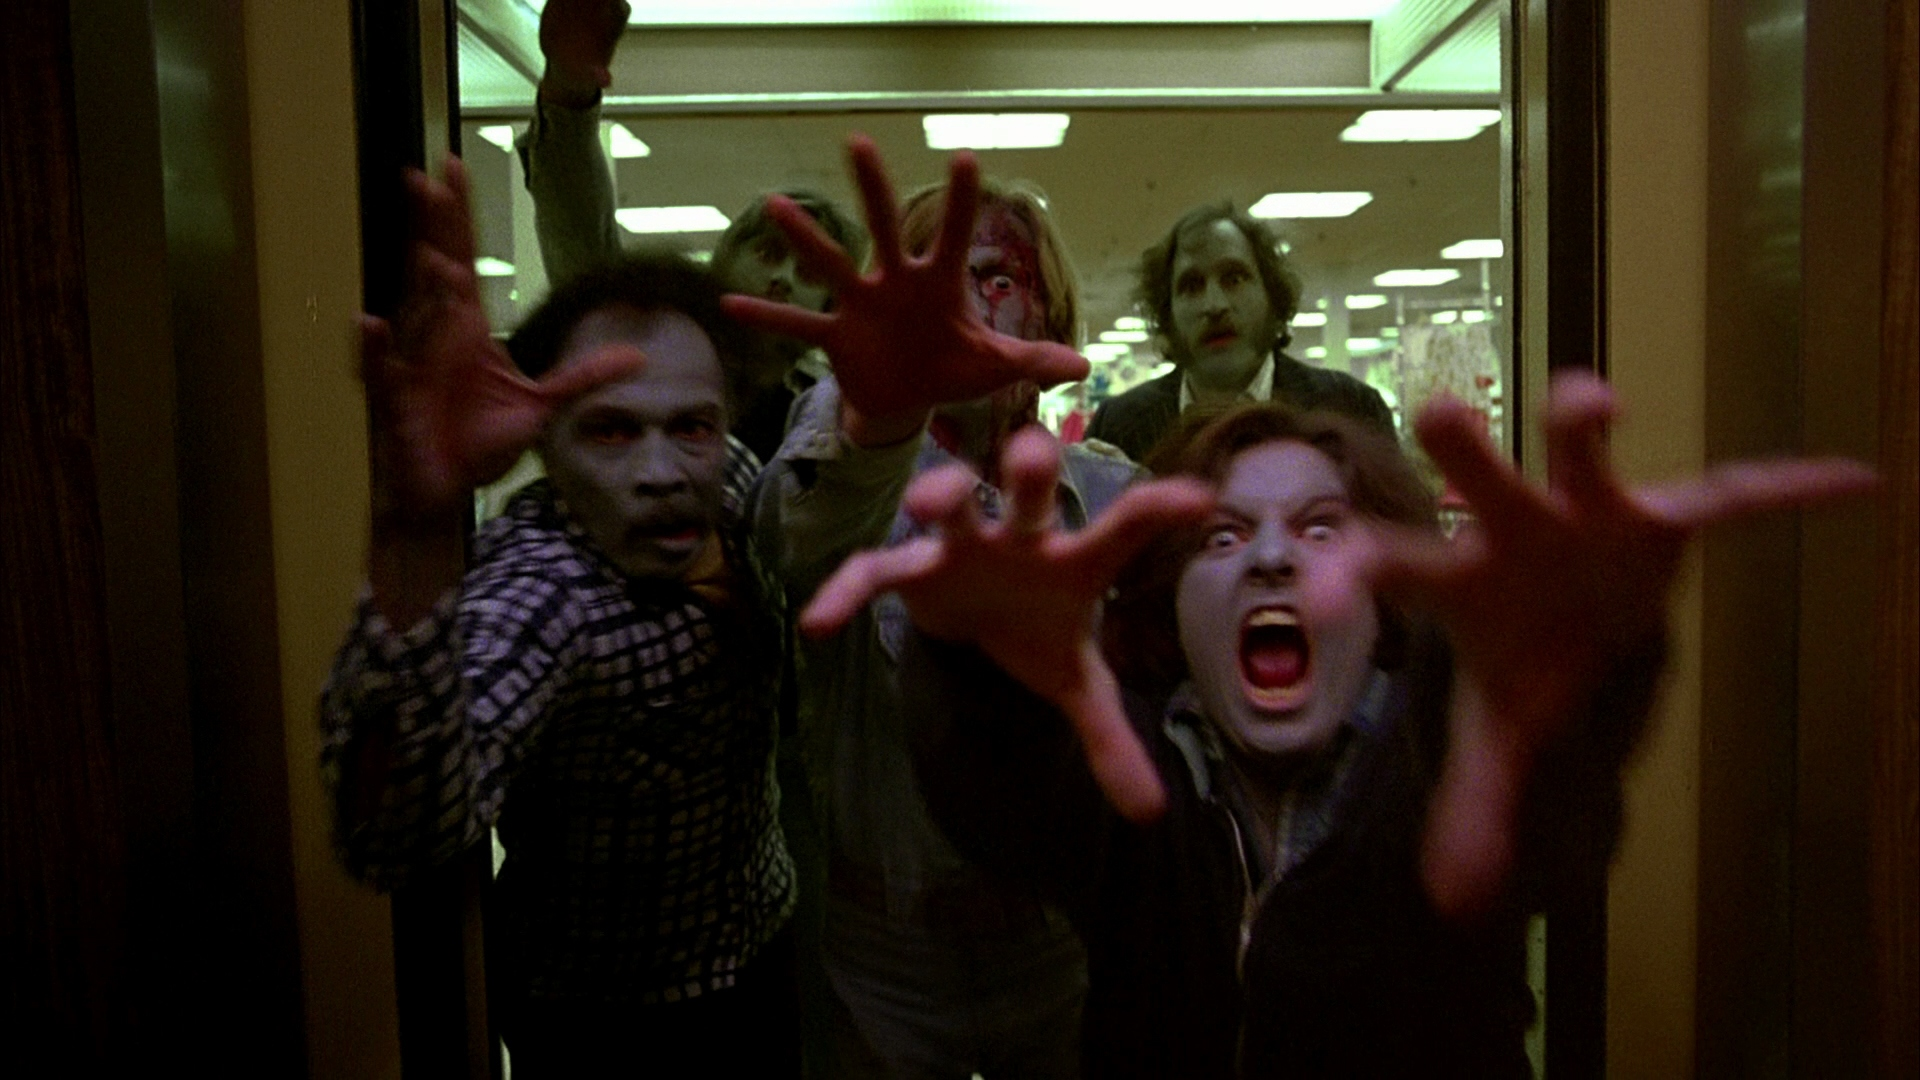 Image du film de 1978 de George Romero : Zombie - Dawn of the Dead